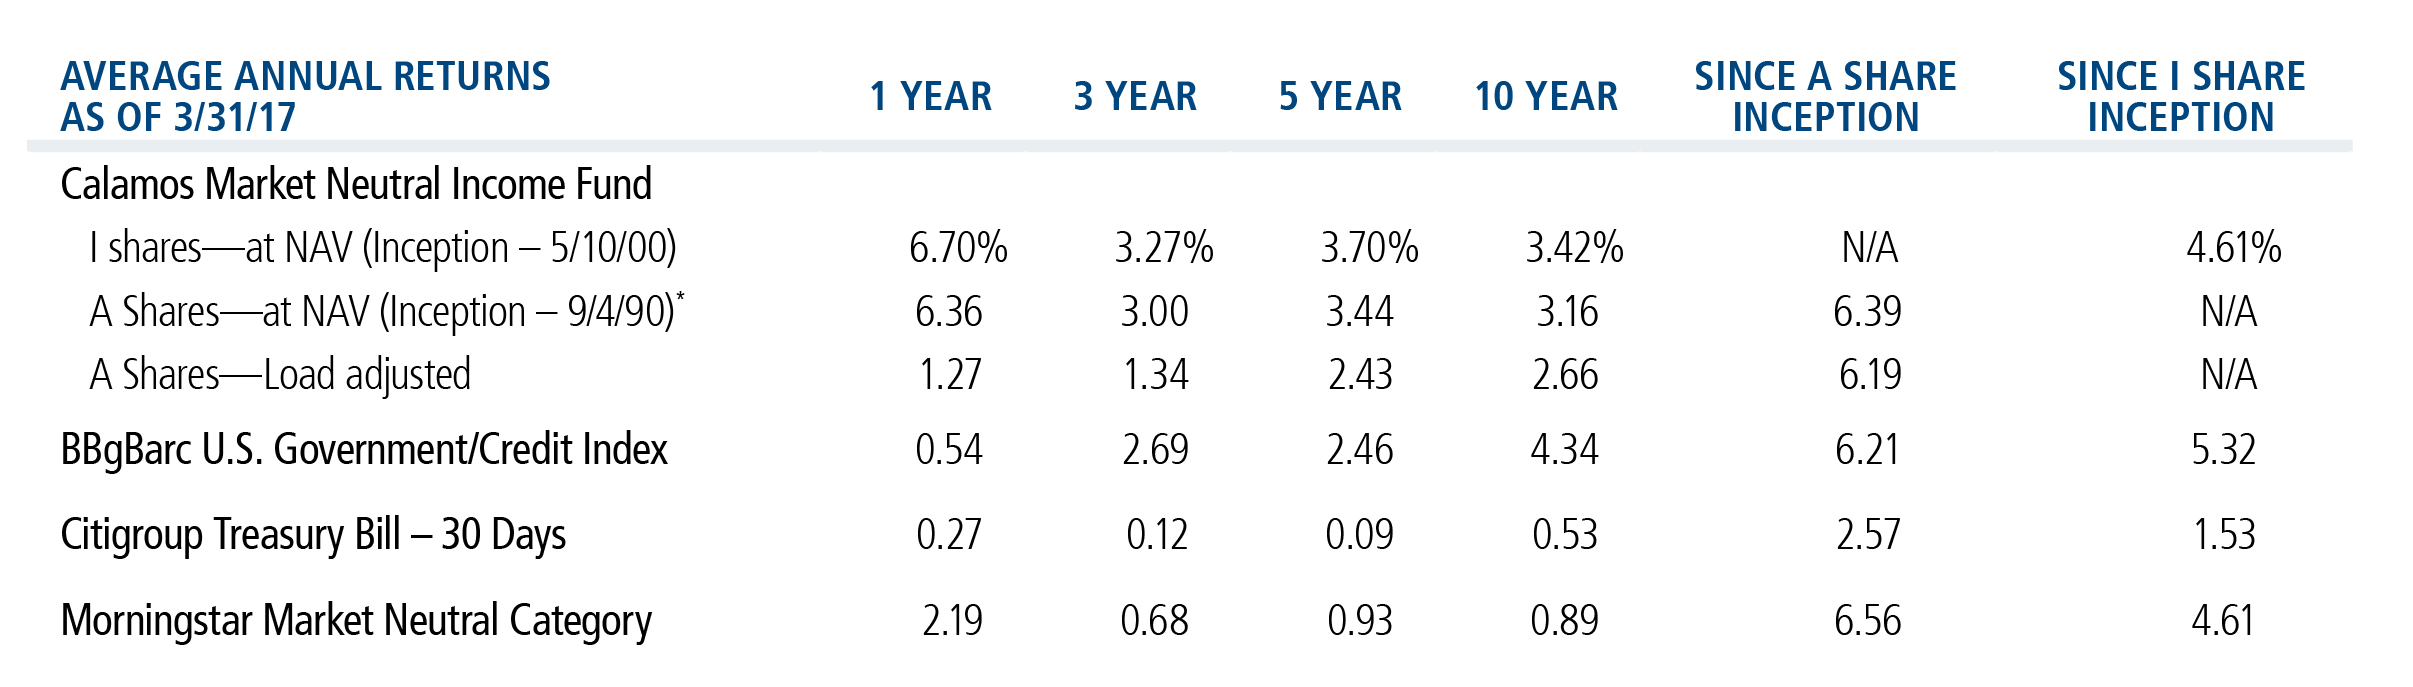 Calamos Market Neutral Income fund average annual returns